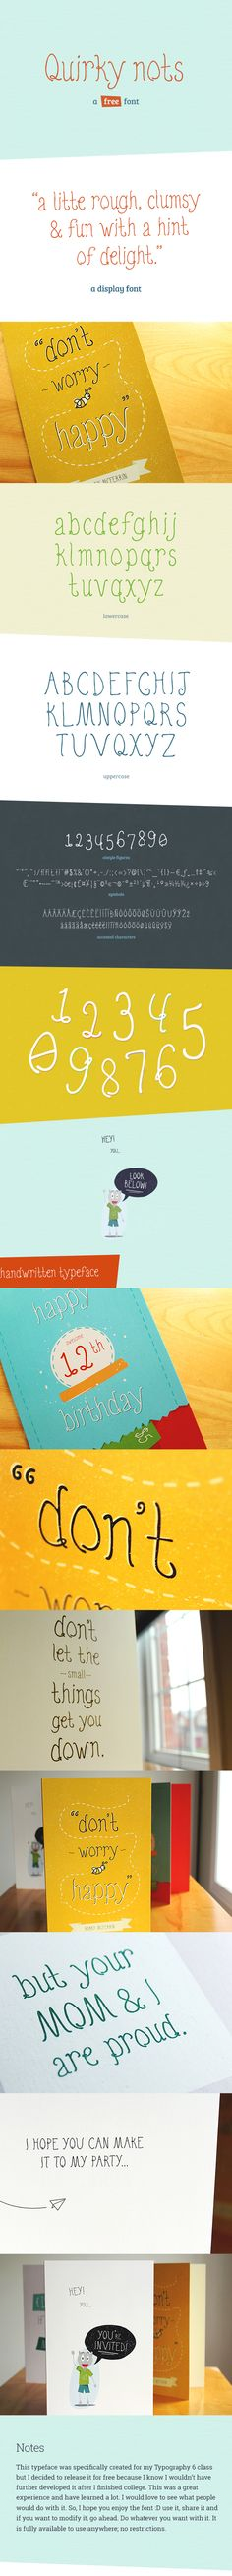 Quirky Nots (Free Font) by Amit Jakhu, via Behance